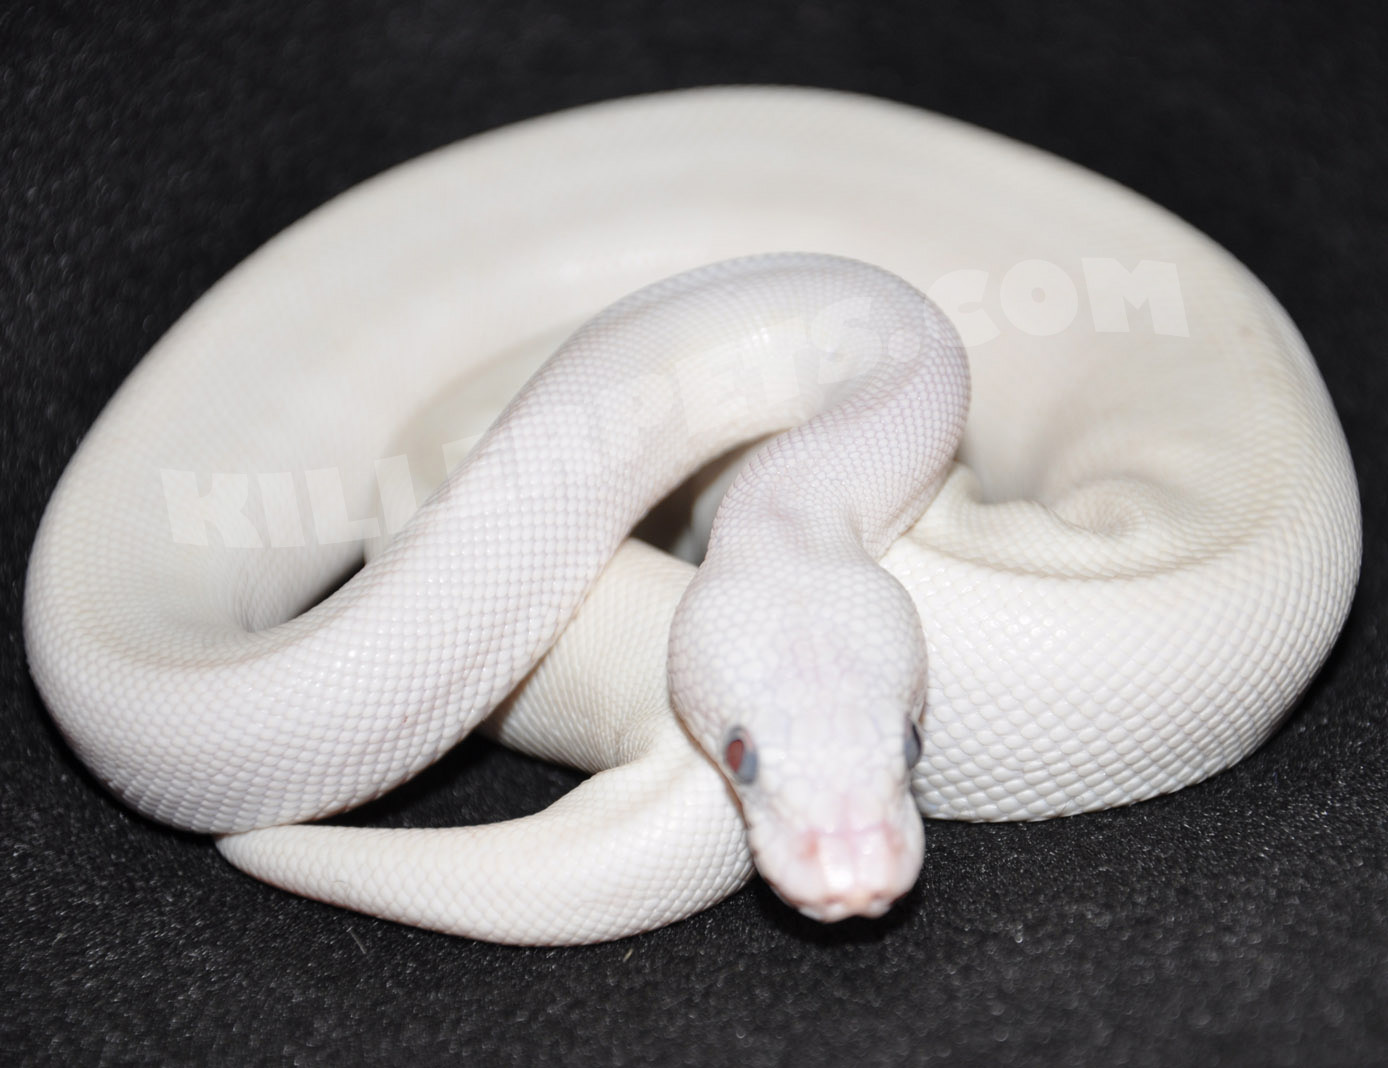 White python snake - photo#2